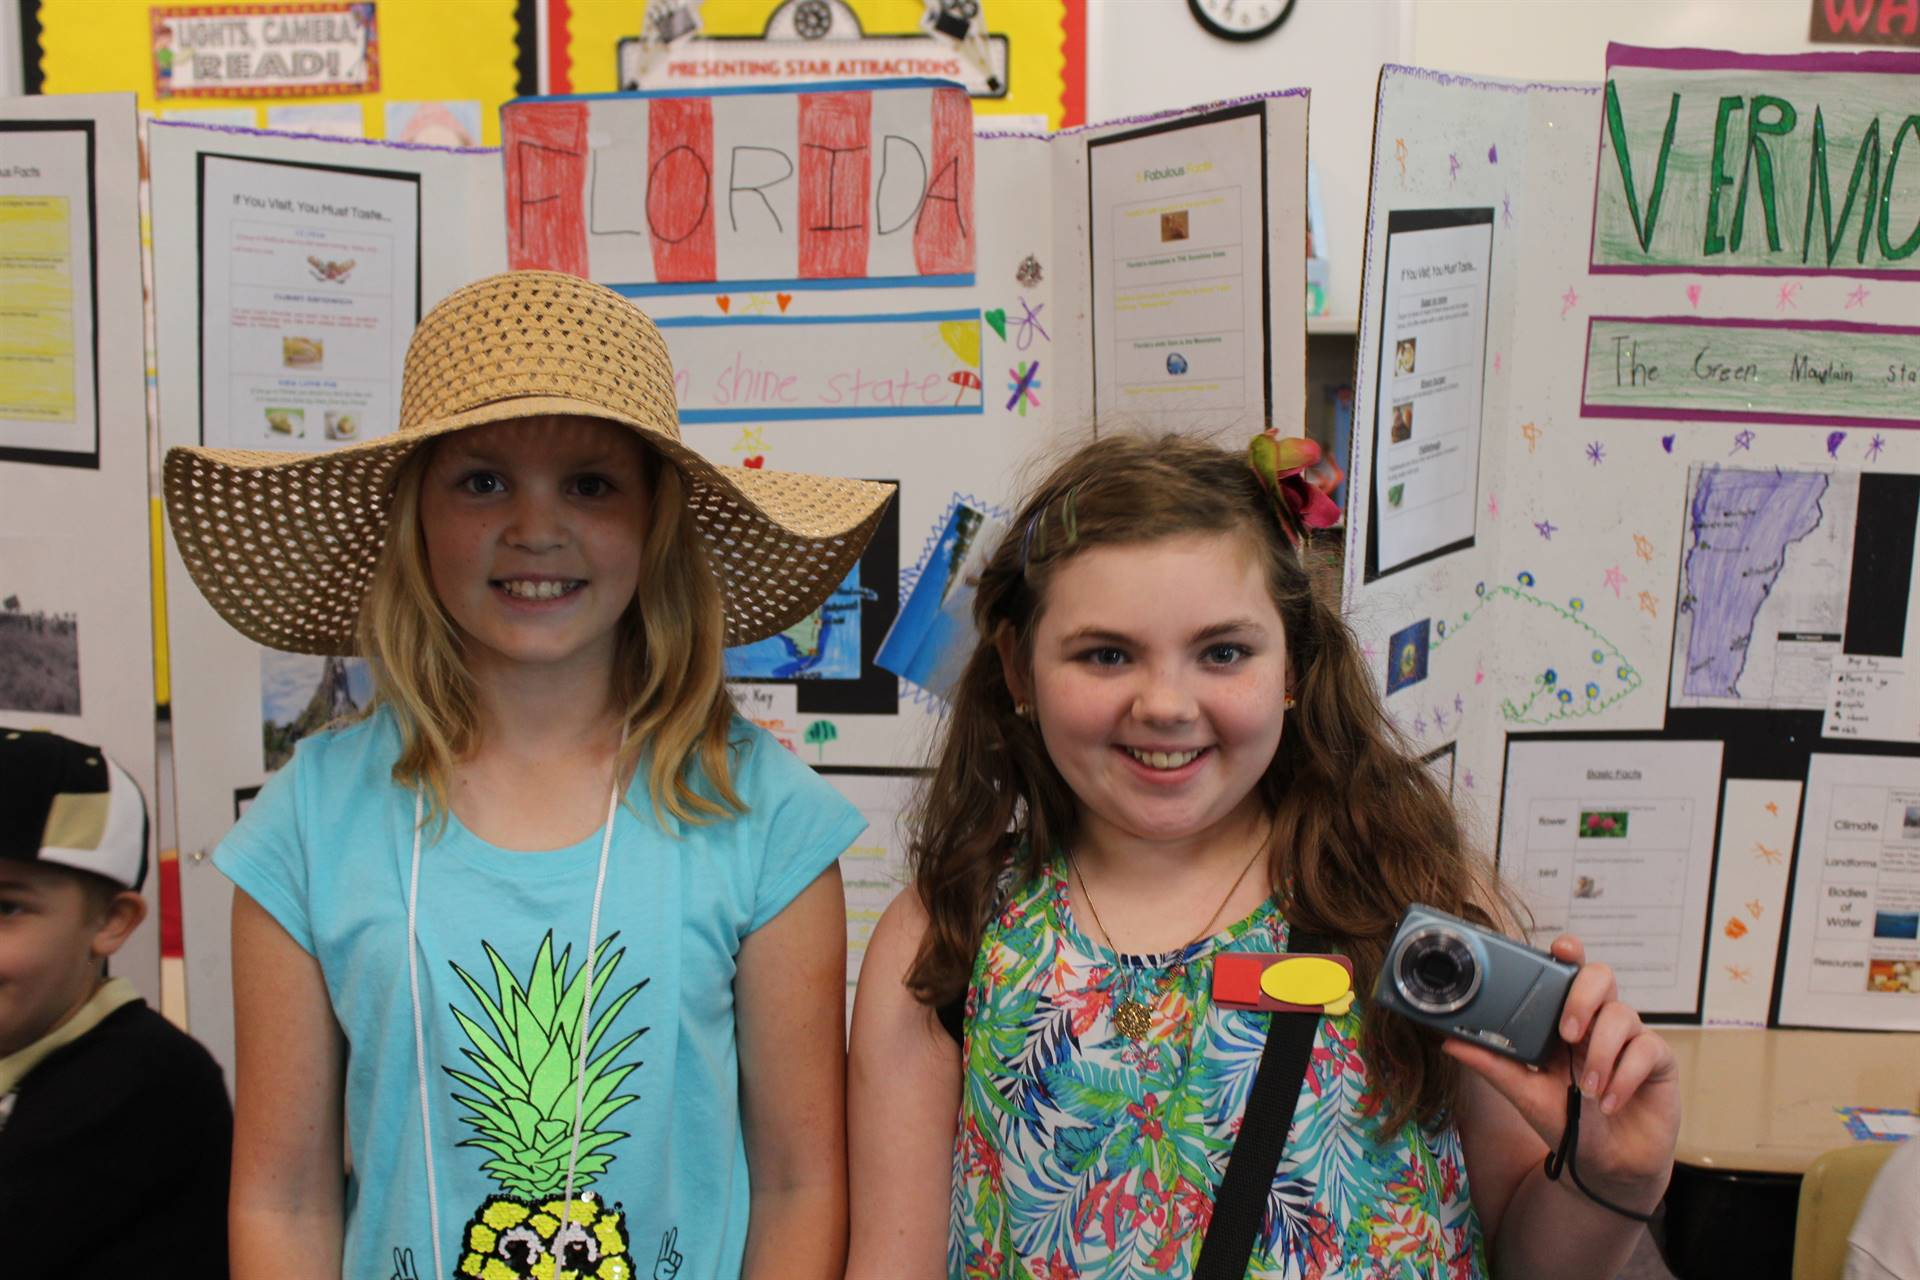 Two students dressed like Florida tourists for the State Fair